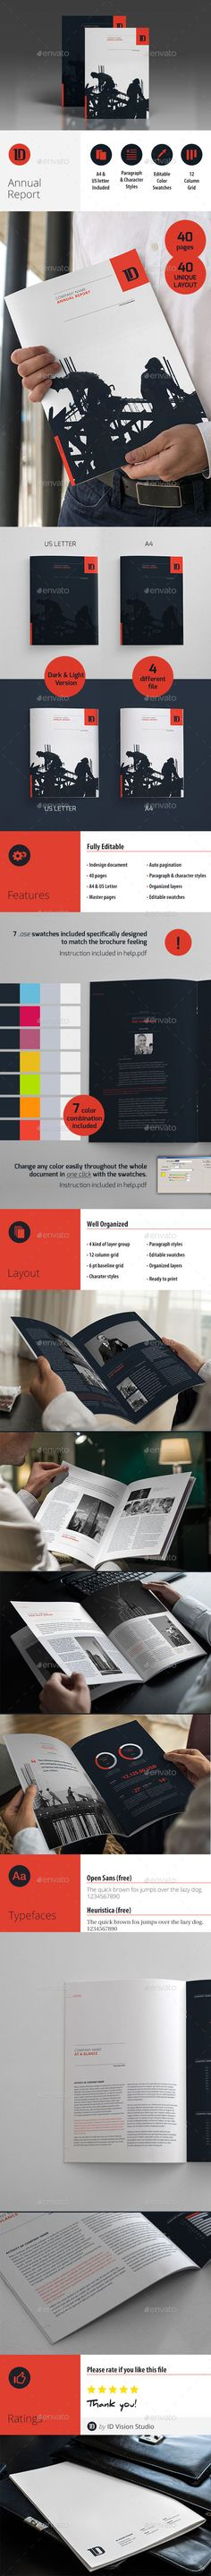 Annual Report Template m1 - A4 Landscape InDesign INDD #design - annual report template design